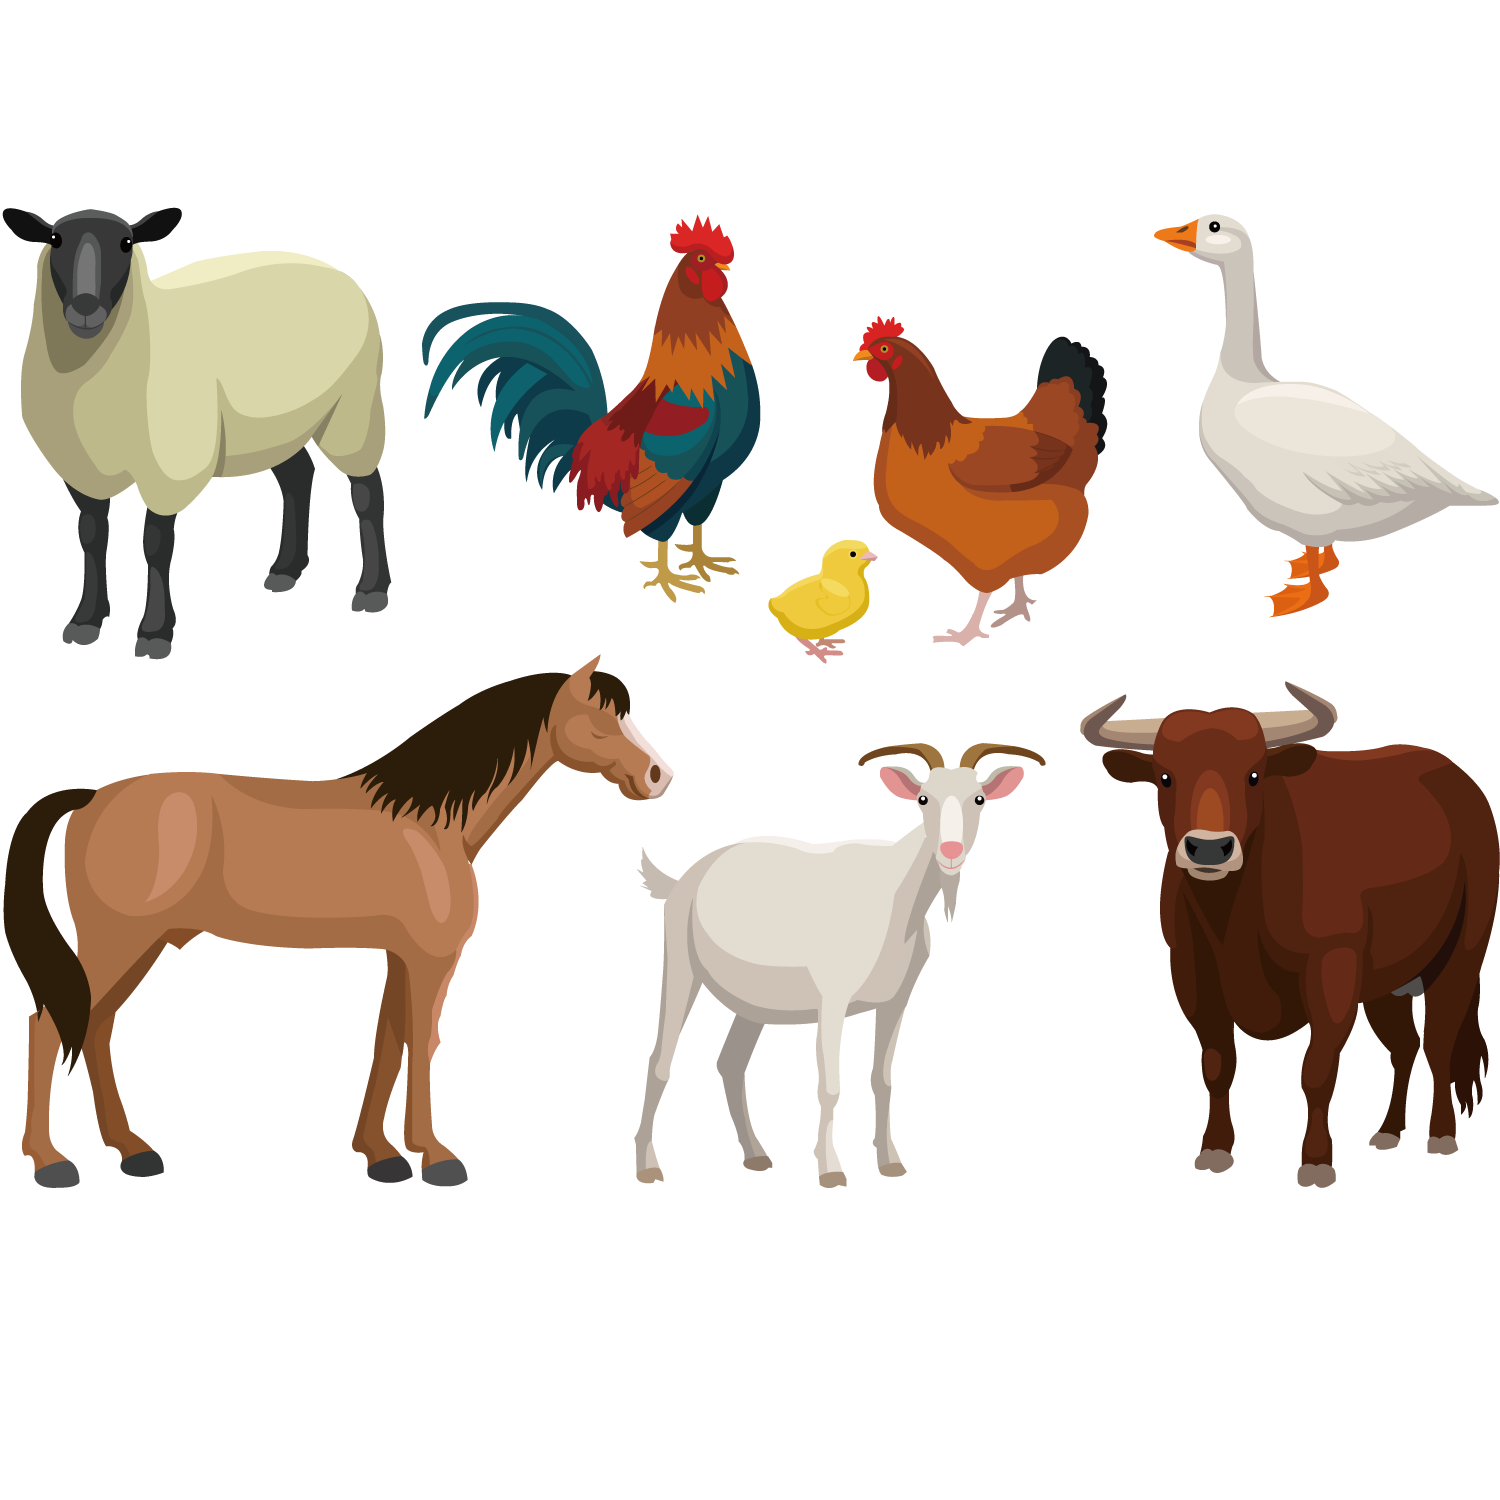 Llama animal vector png. Cattle goat sheep livestock